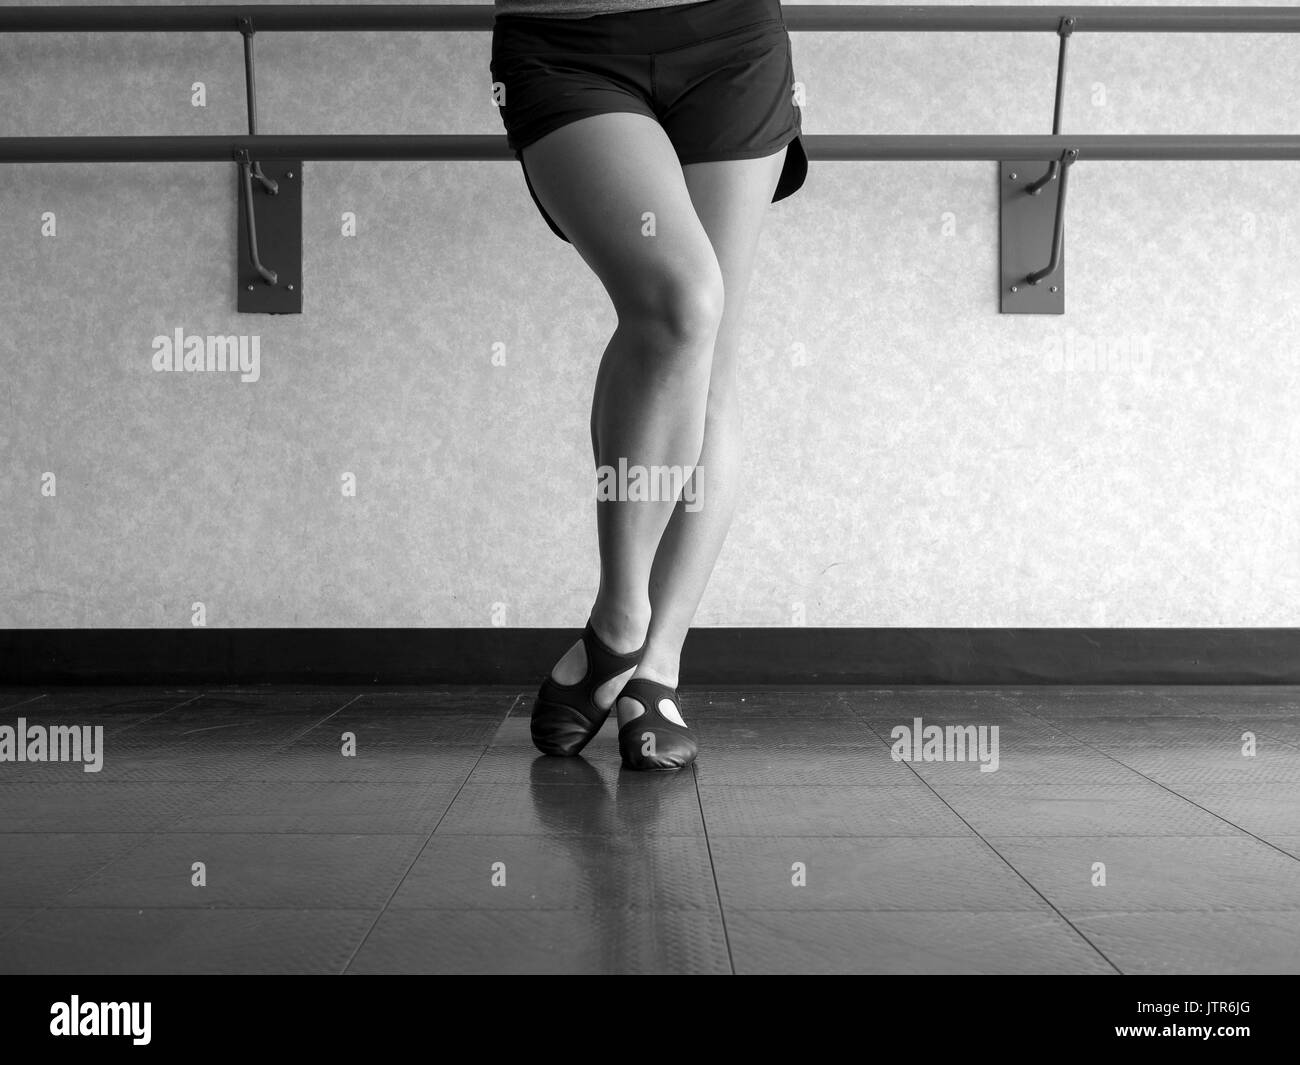 black and white version of Dancer with Bevelled foot in Jazz dig position - Stock Image